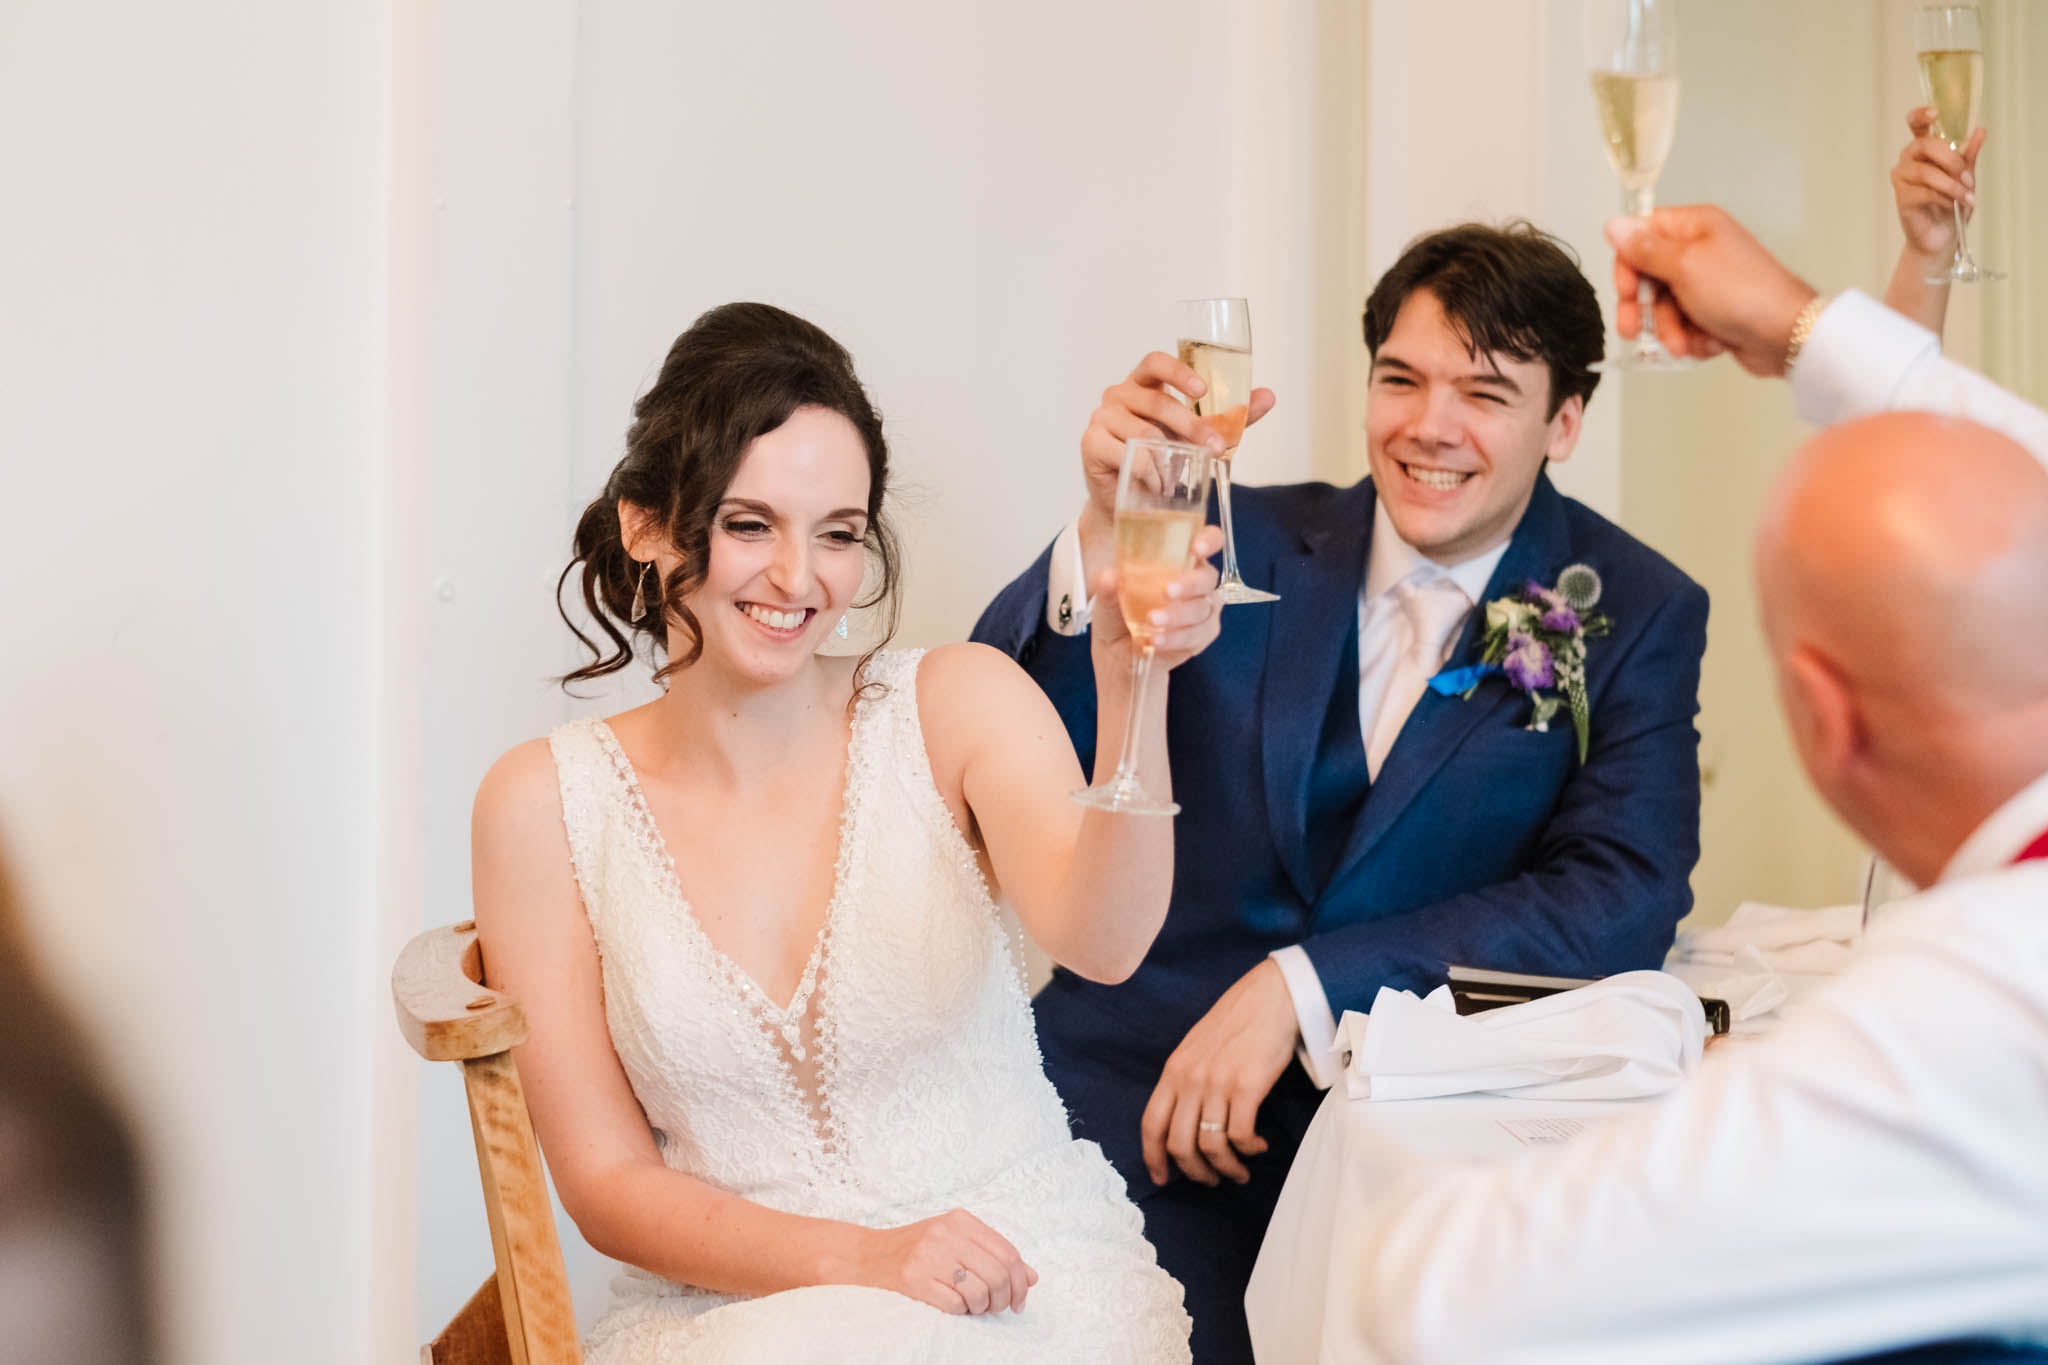 bride and groom toasting during speeches